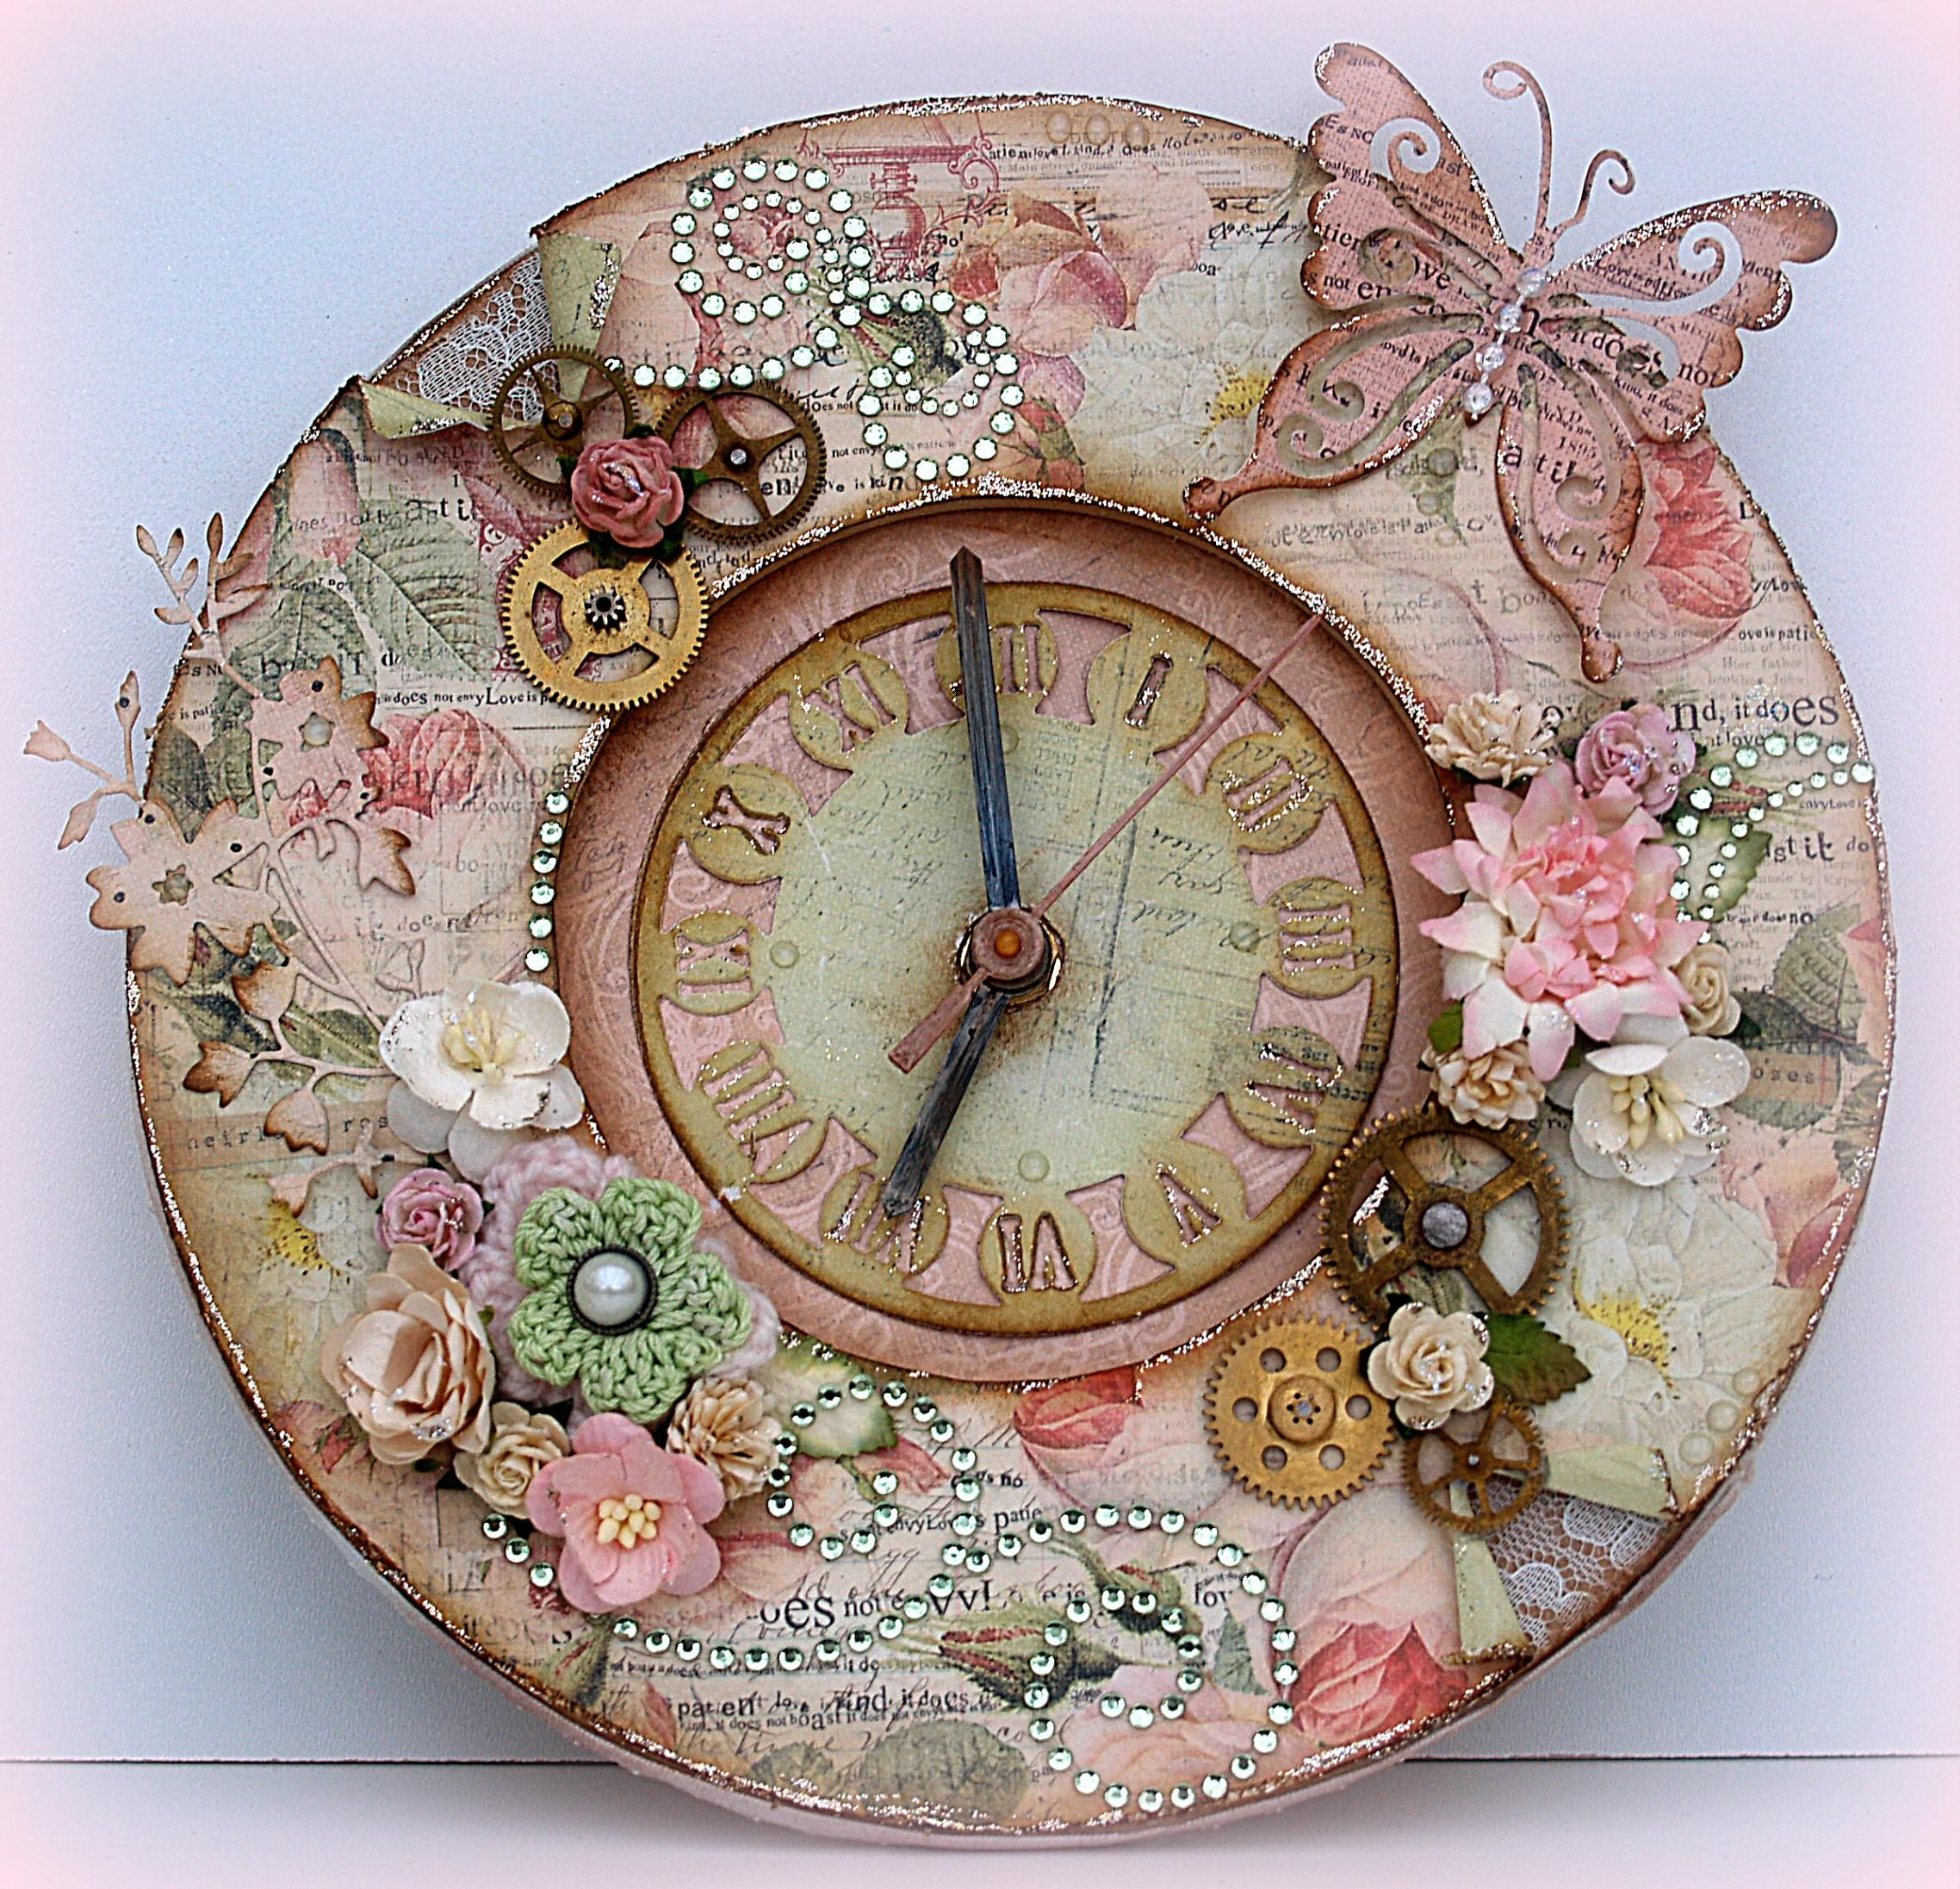 Pin By Tracy On Levi And Micah' S Clocks